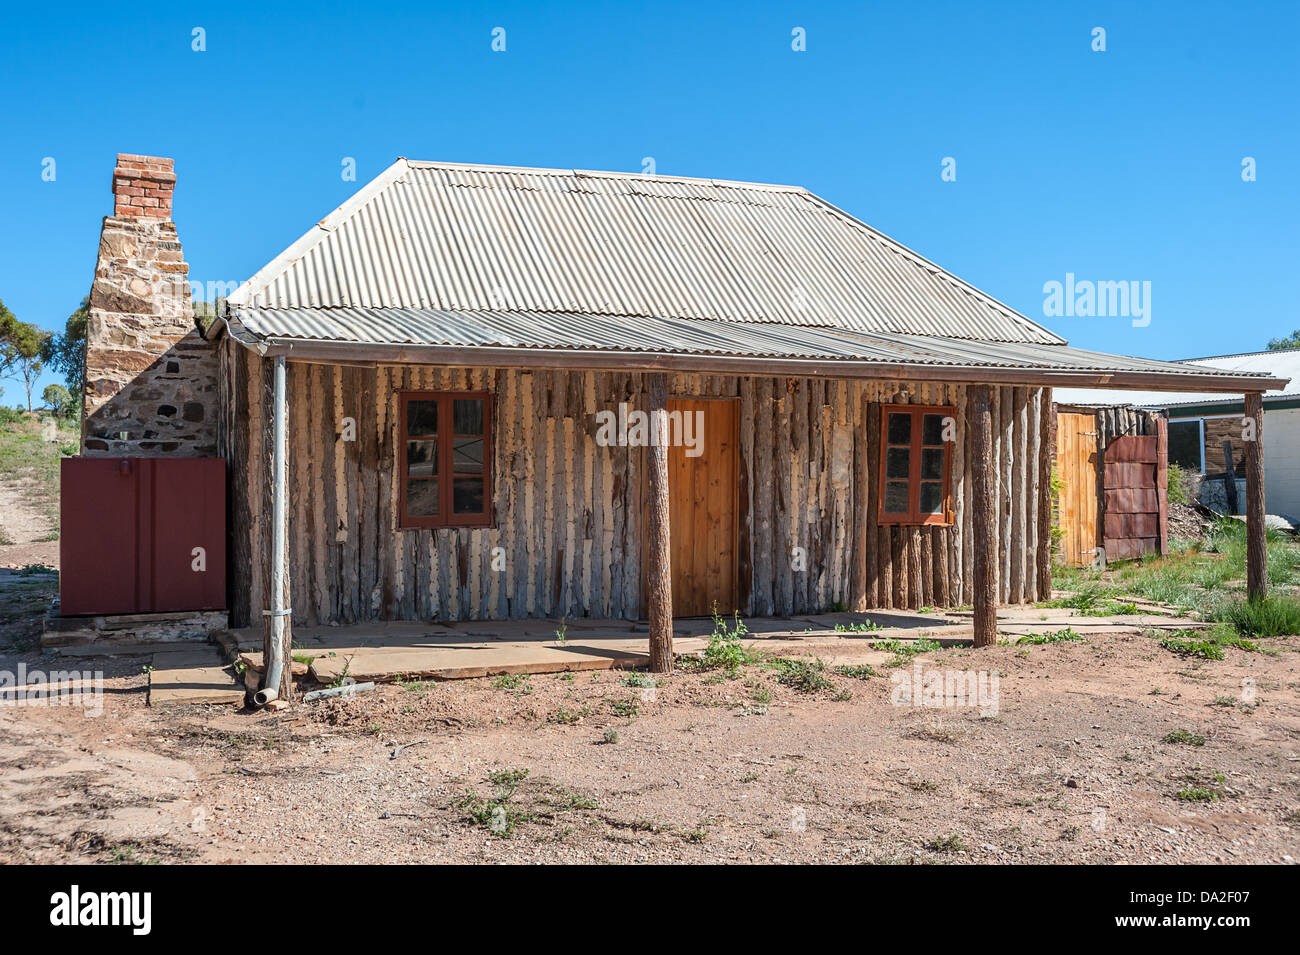 A House In The Town Of Blinman Ruggedly Beautiful Flinders Ranges Australian Outback